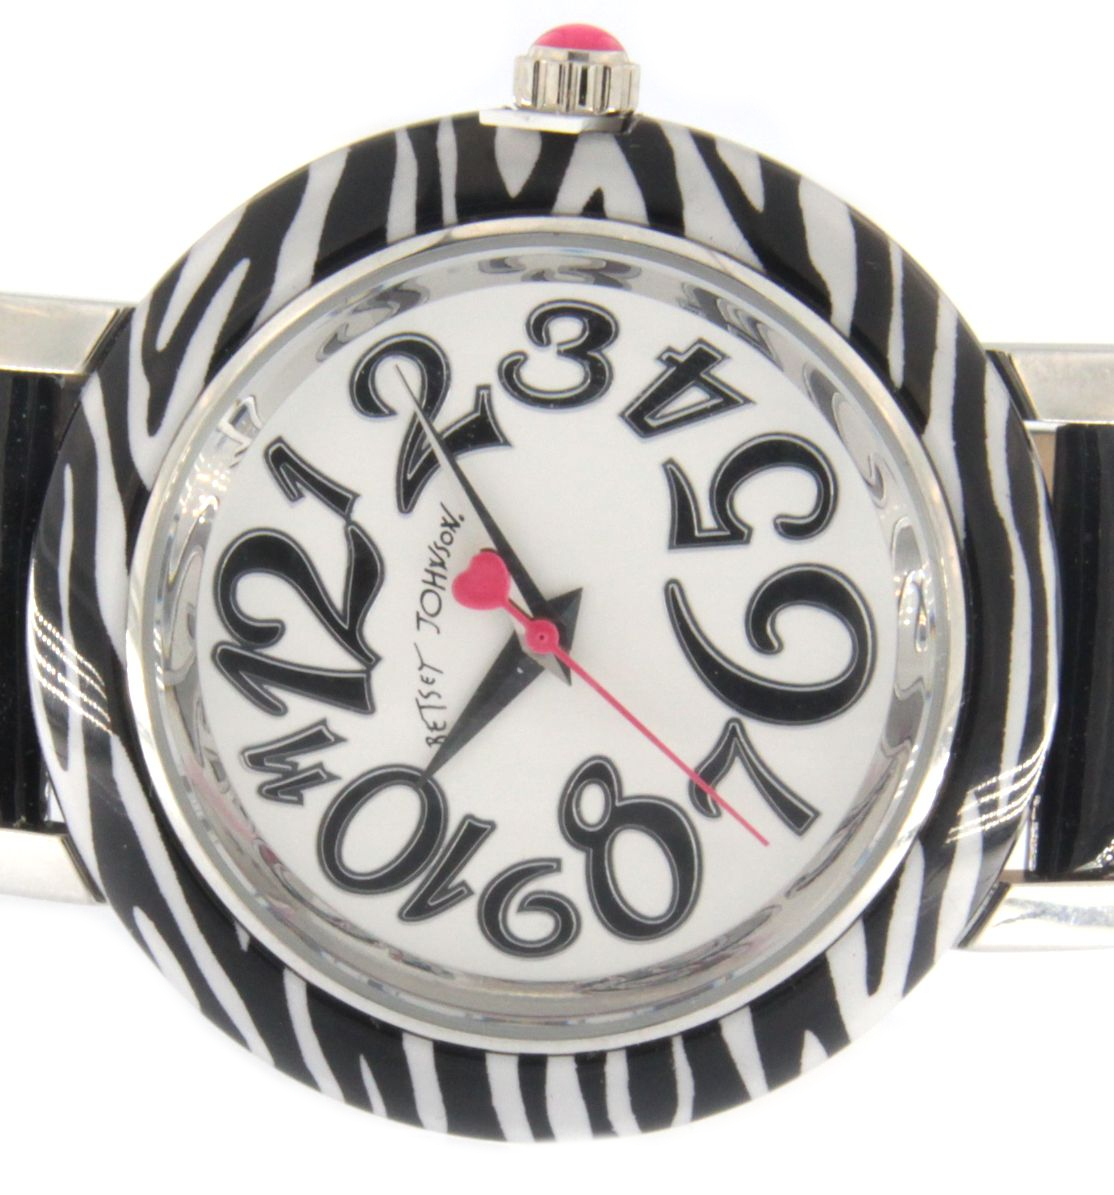 Primary image for Betsy johnson Wrist Watch Bj00118-04